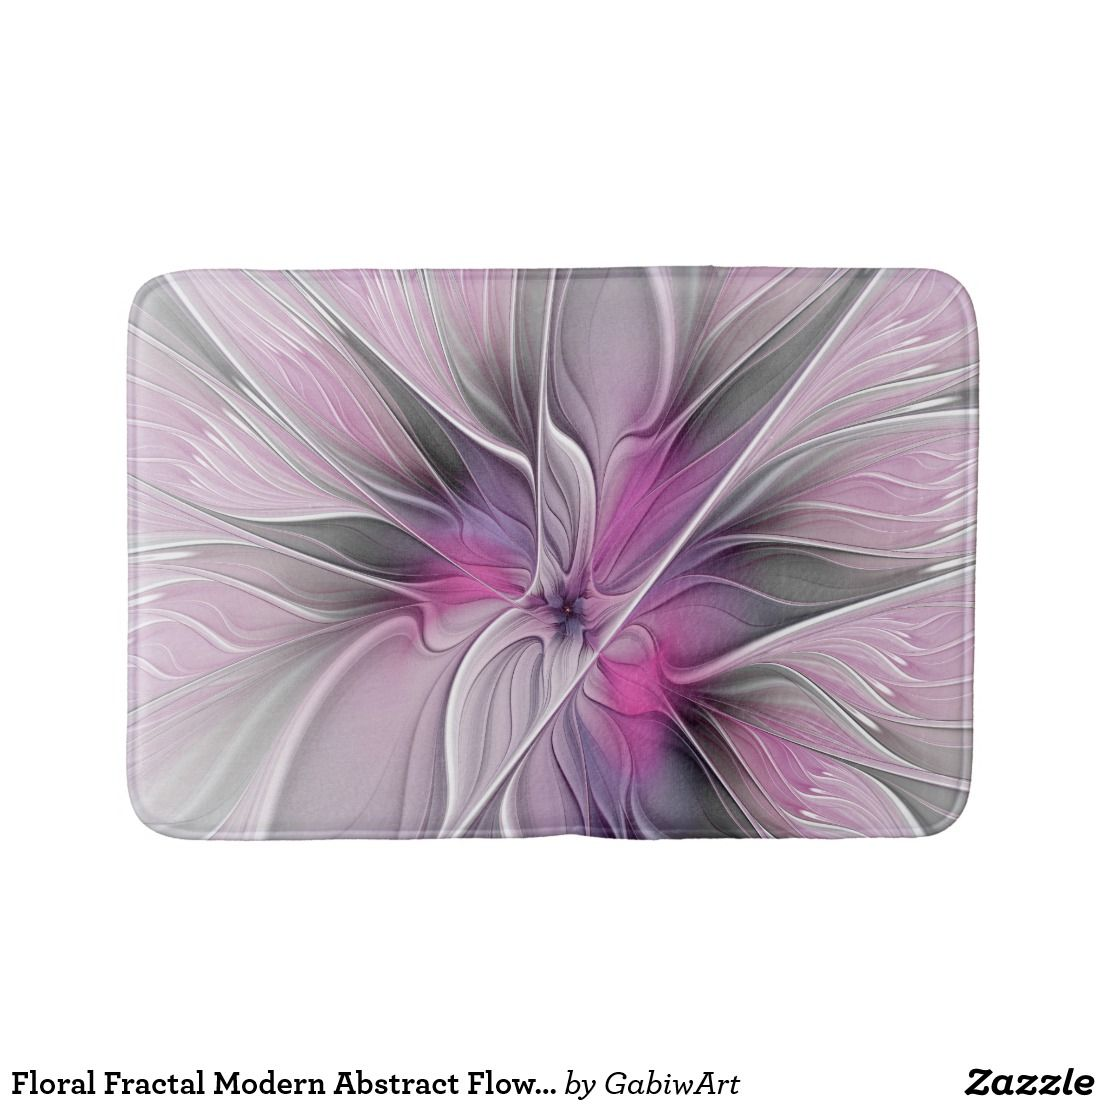 Badematte Rosa Floral Fractal Modern Abstract Flower Pink Gray Bath Mat Zazzle